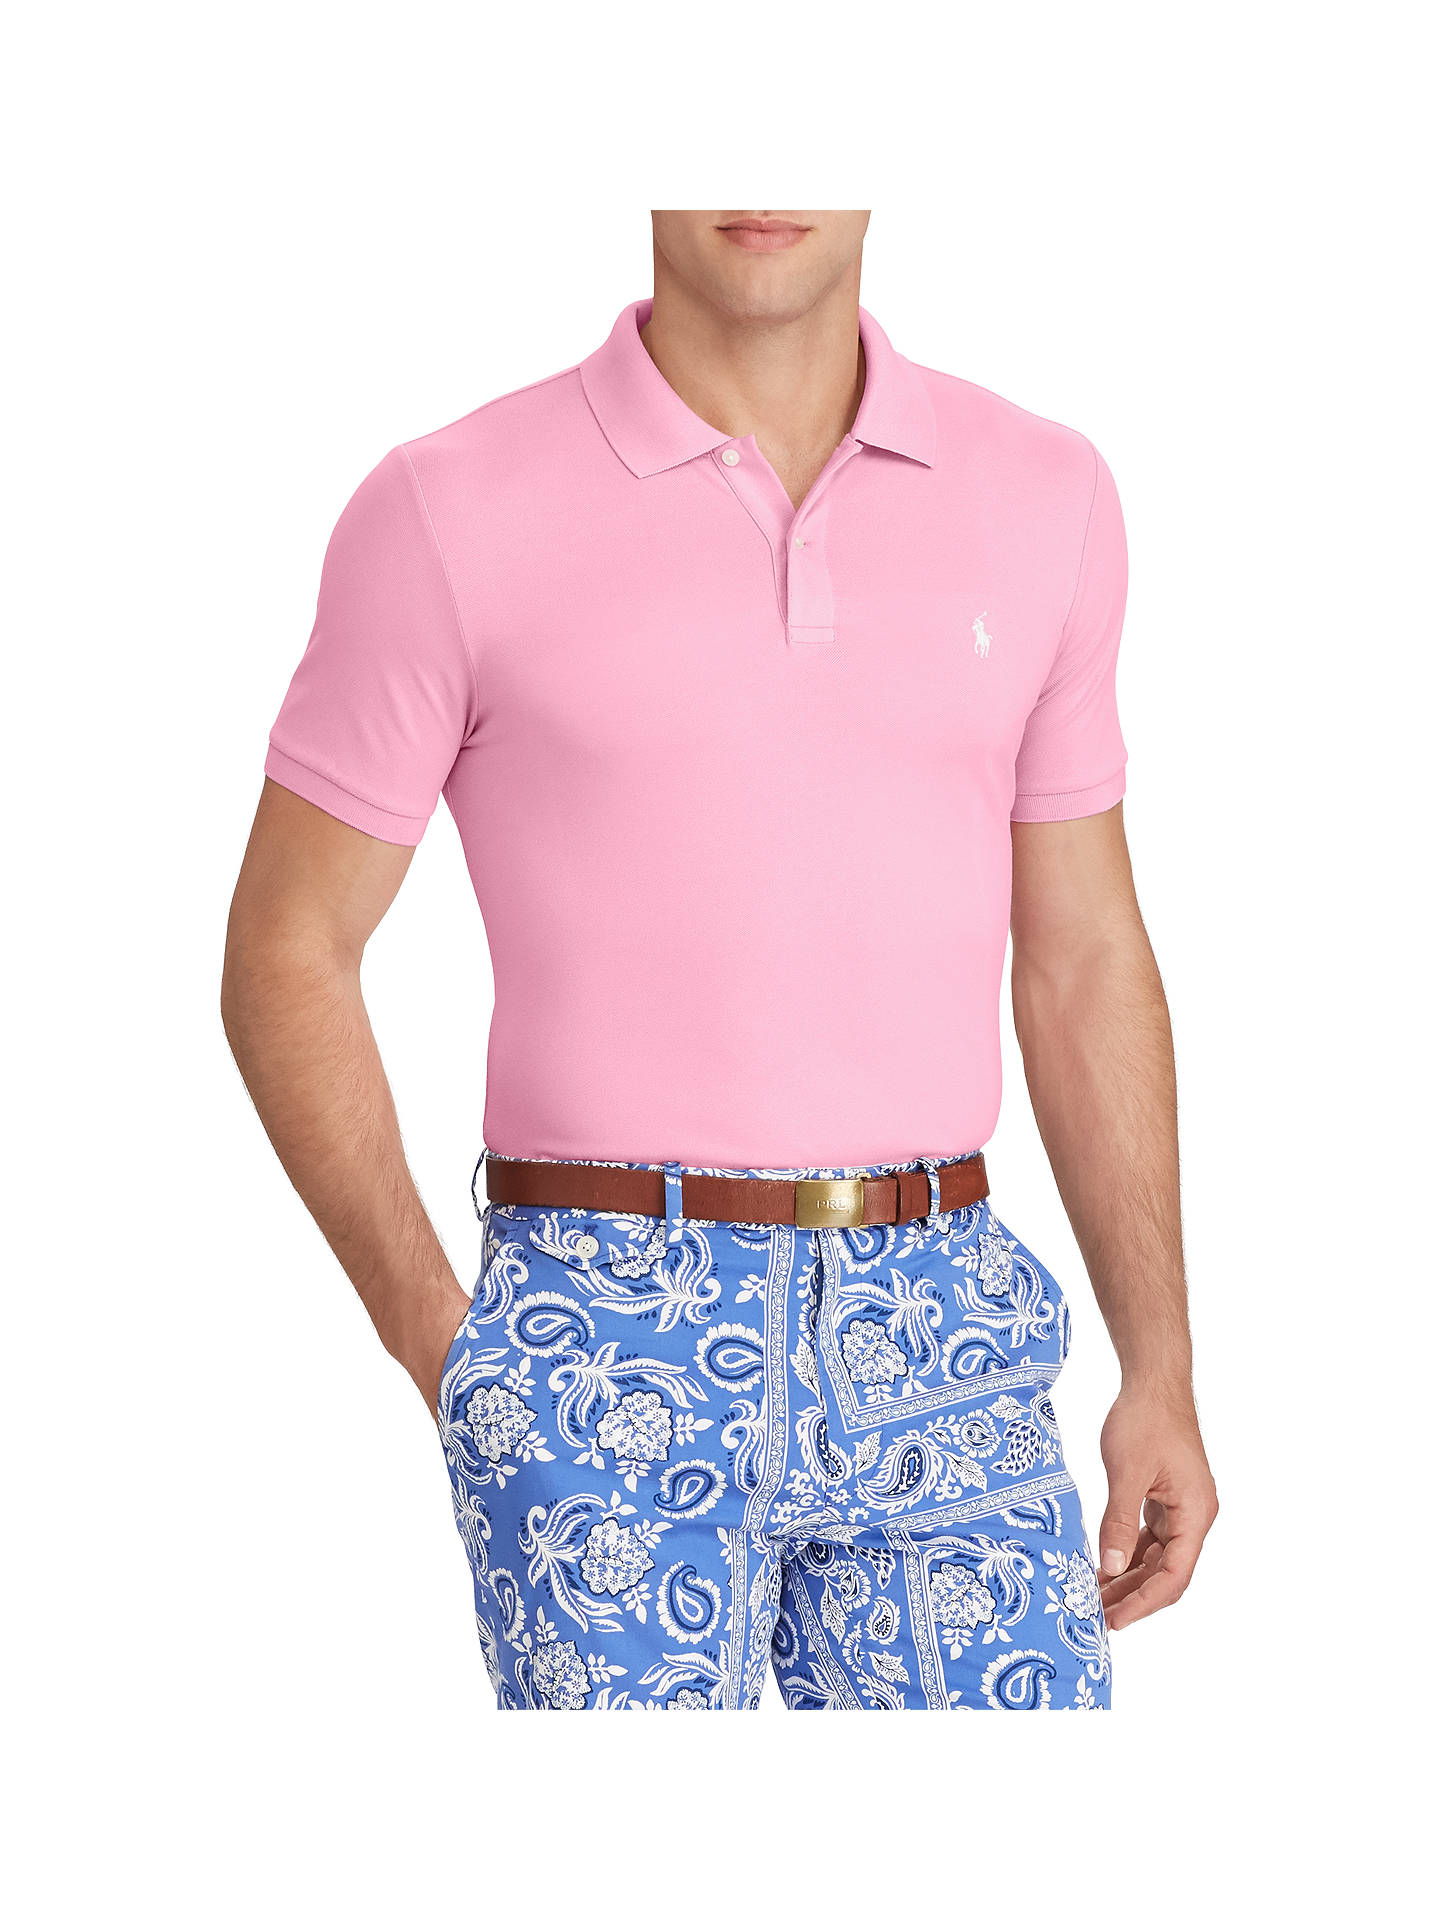 47be7ec12 Buy Polo Golf by Ralph Lauren Stretch Mesh Pro Fit Polo Shirt, Beach Pink,  ...